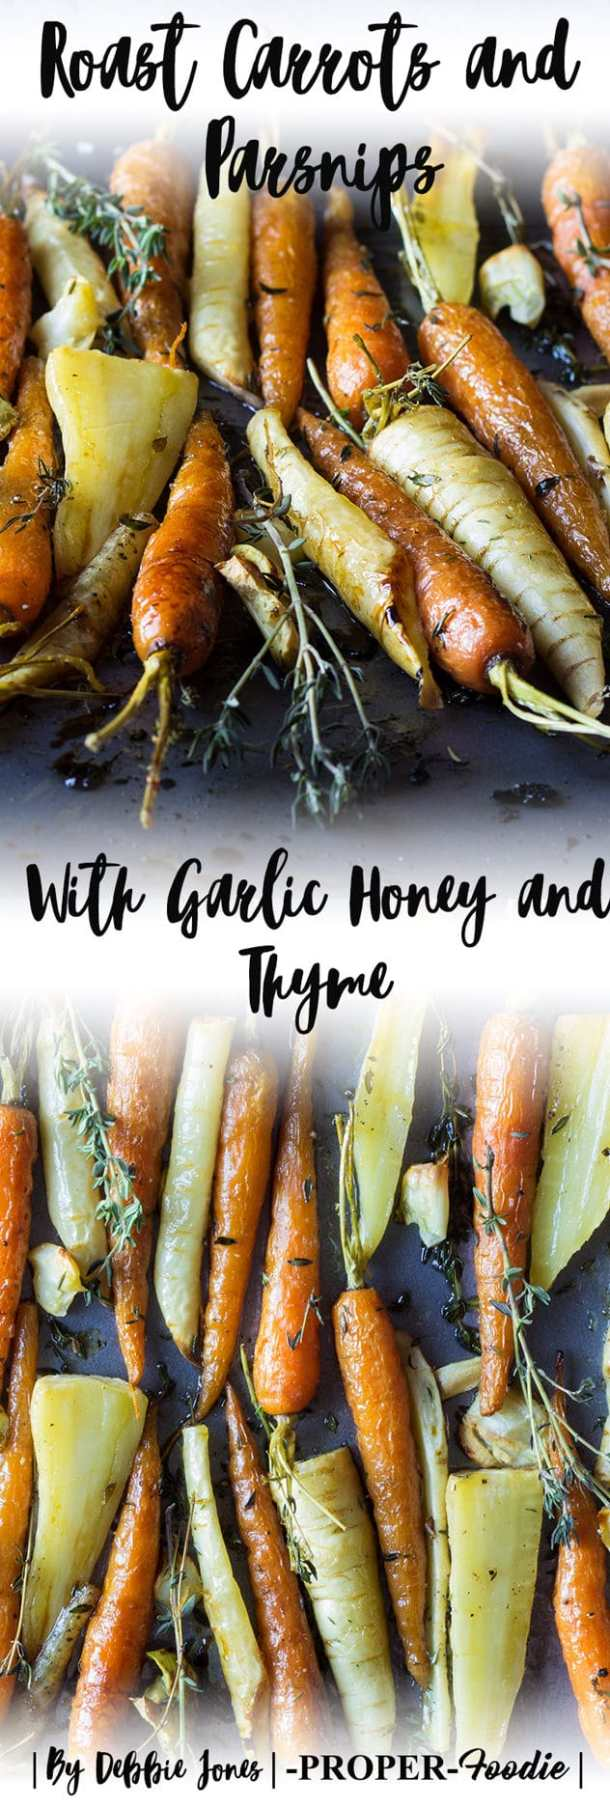 Honey glazed carrots and parsnip root vegetables with garlic and thyme